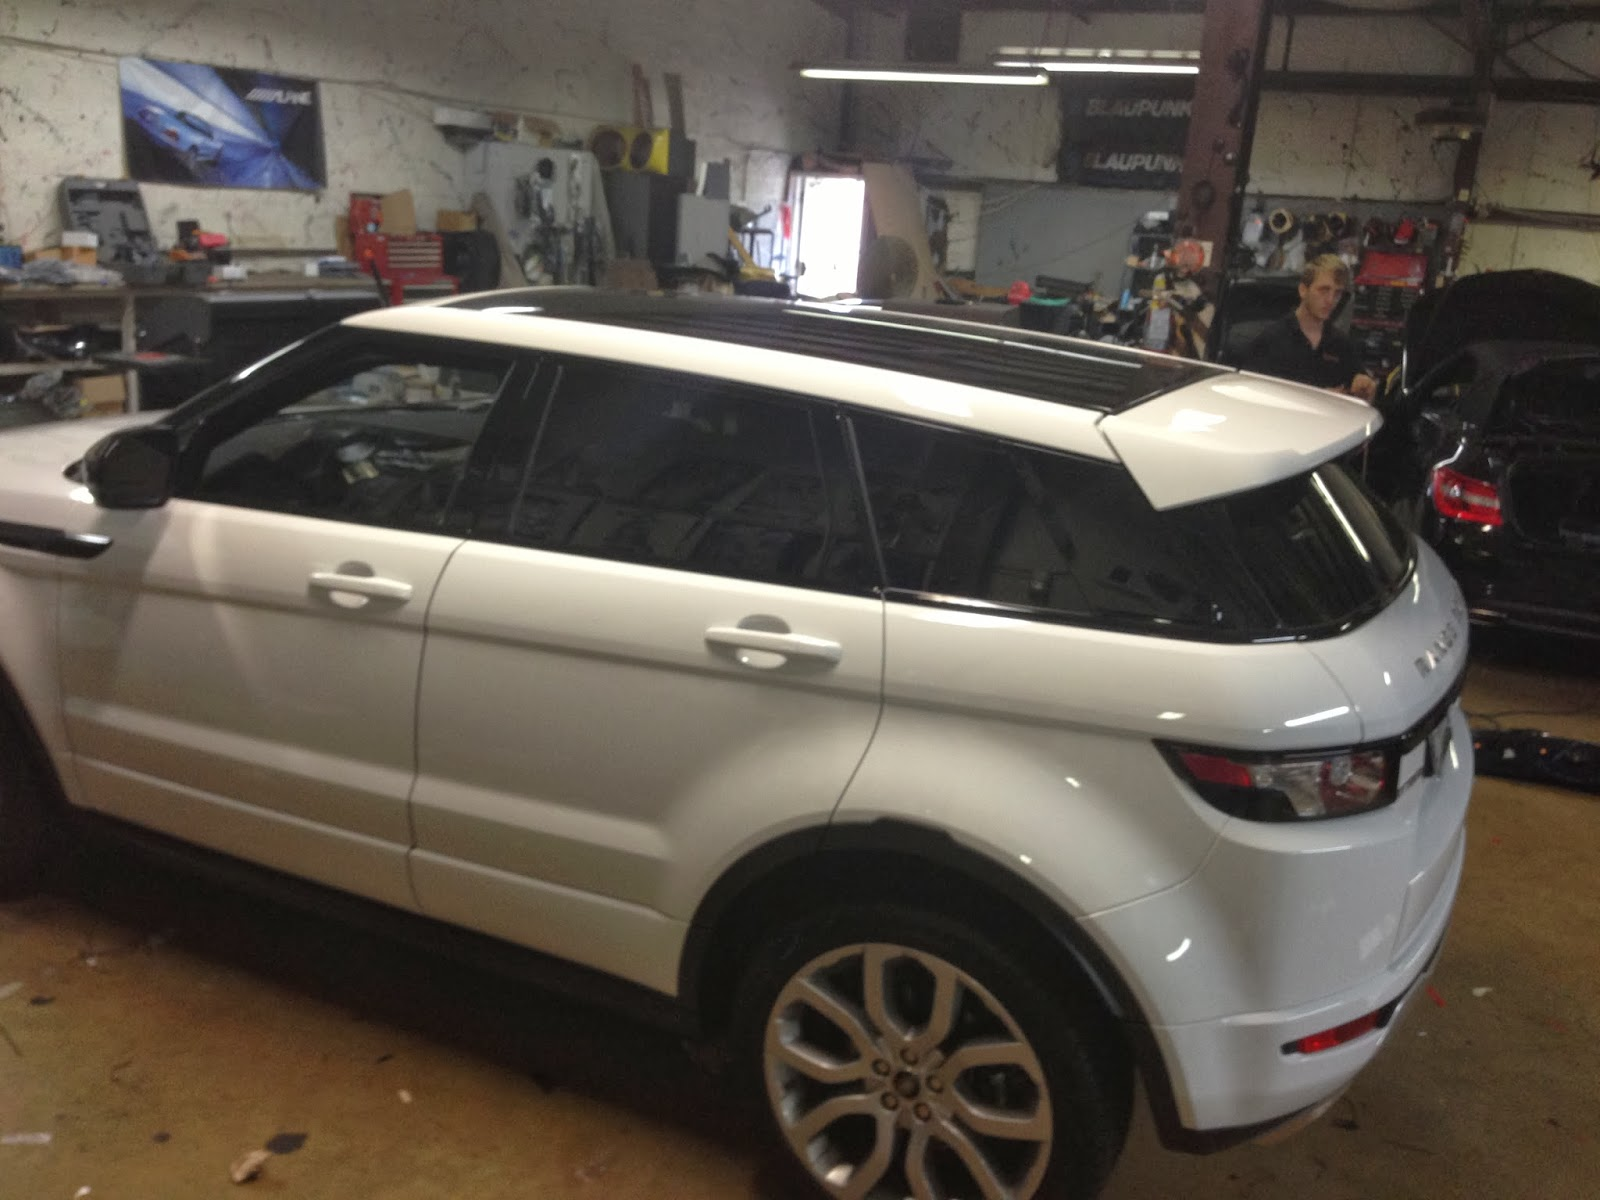 Hurleys Auto Audio Land Rover Evoque for Radar Detector